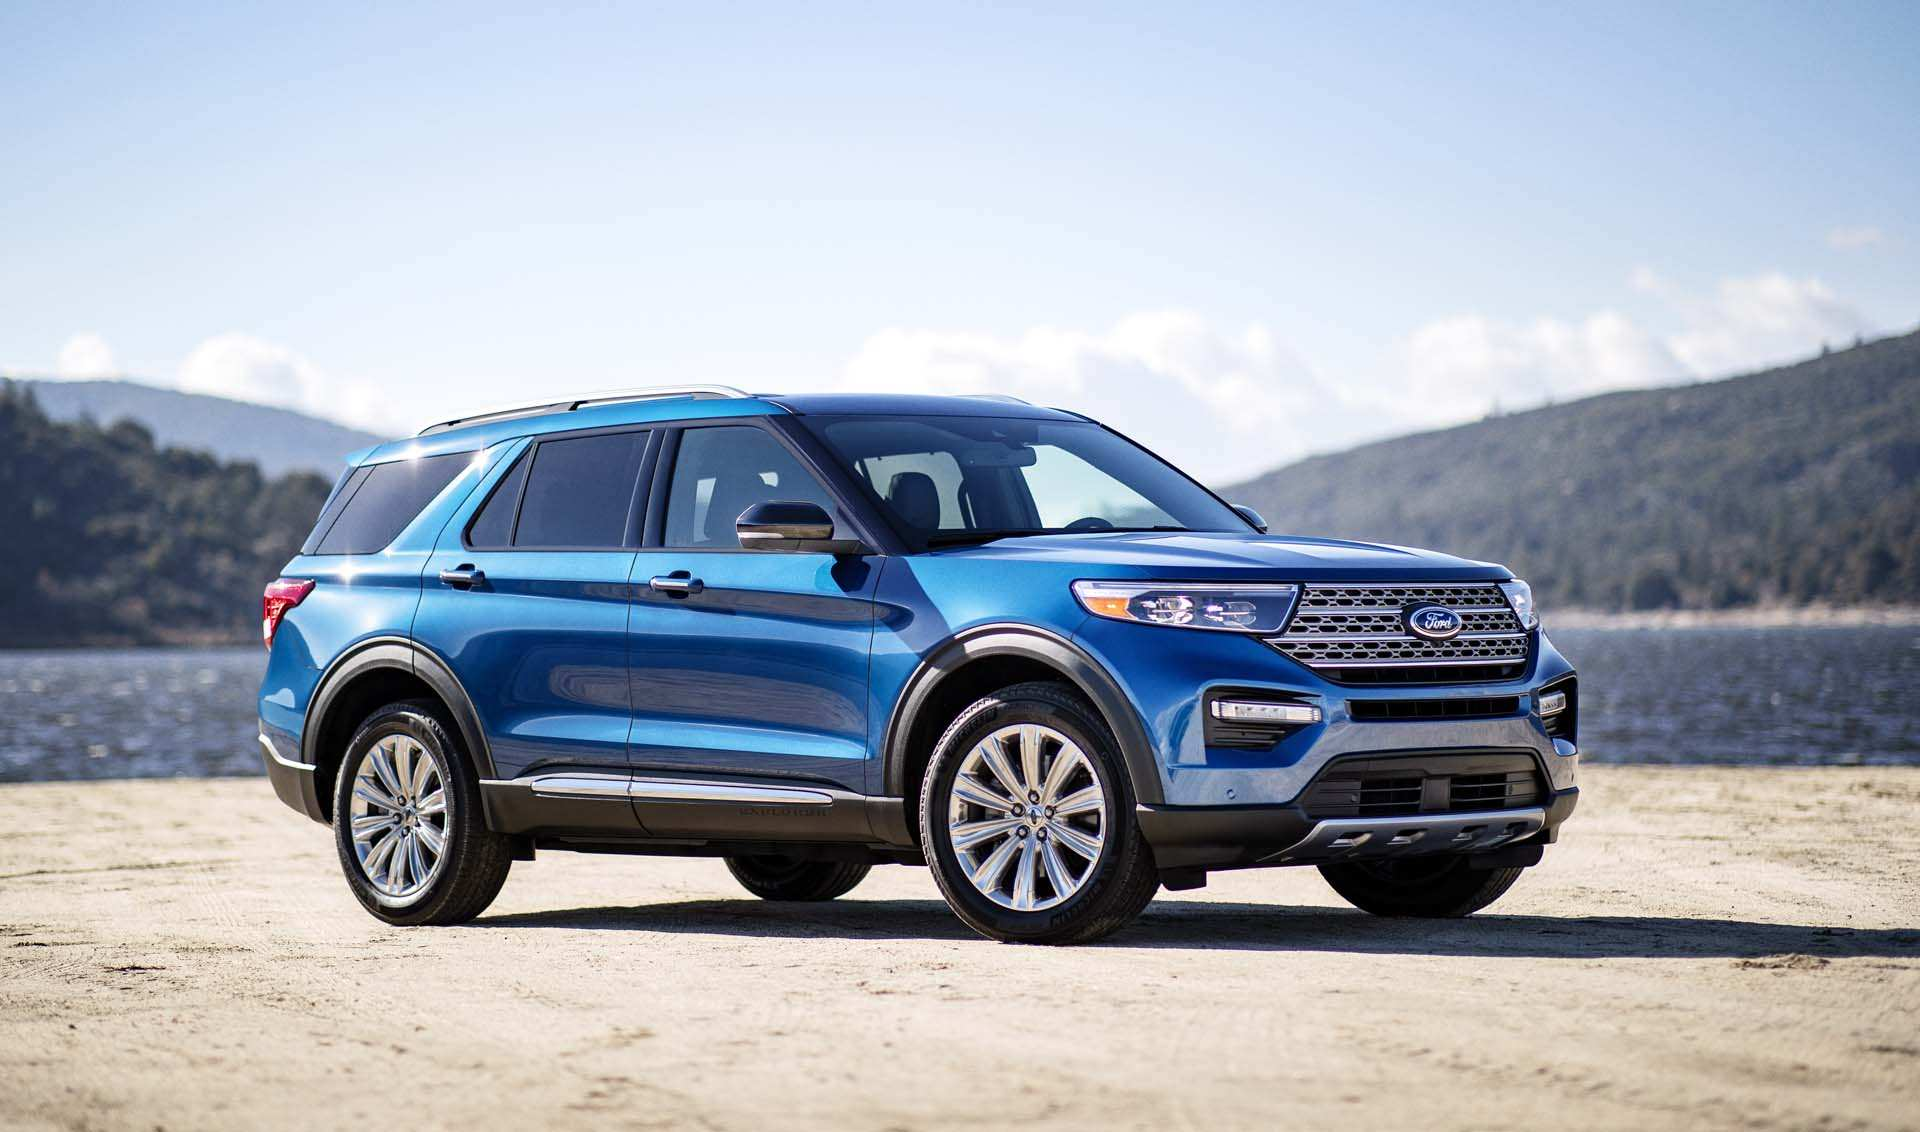 44 All New 2020 Ford Explorer Limited Images